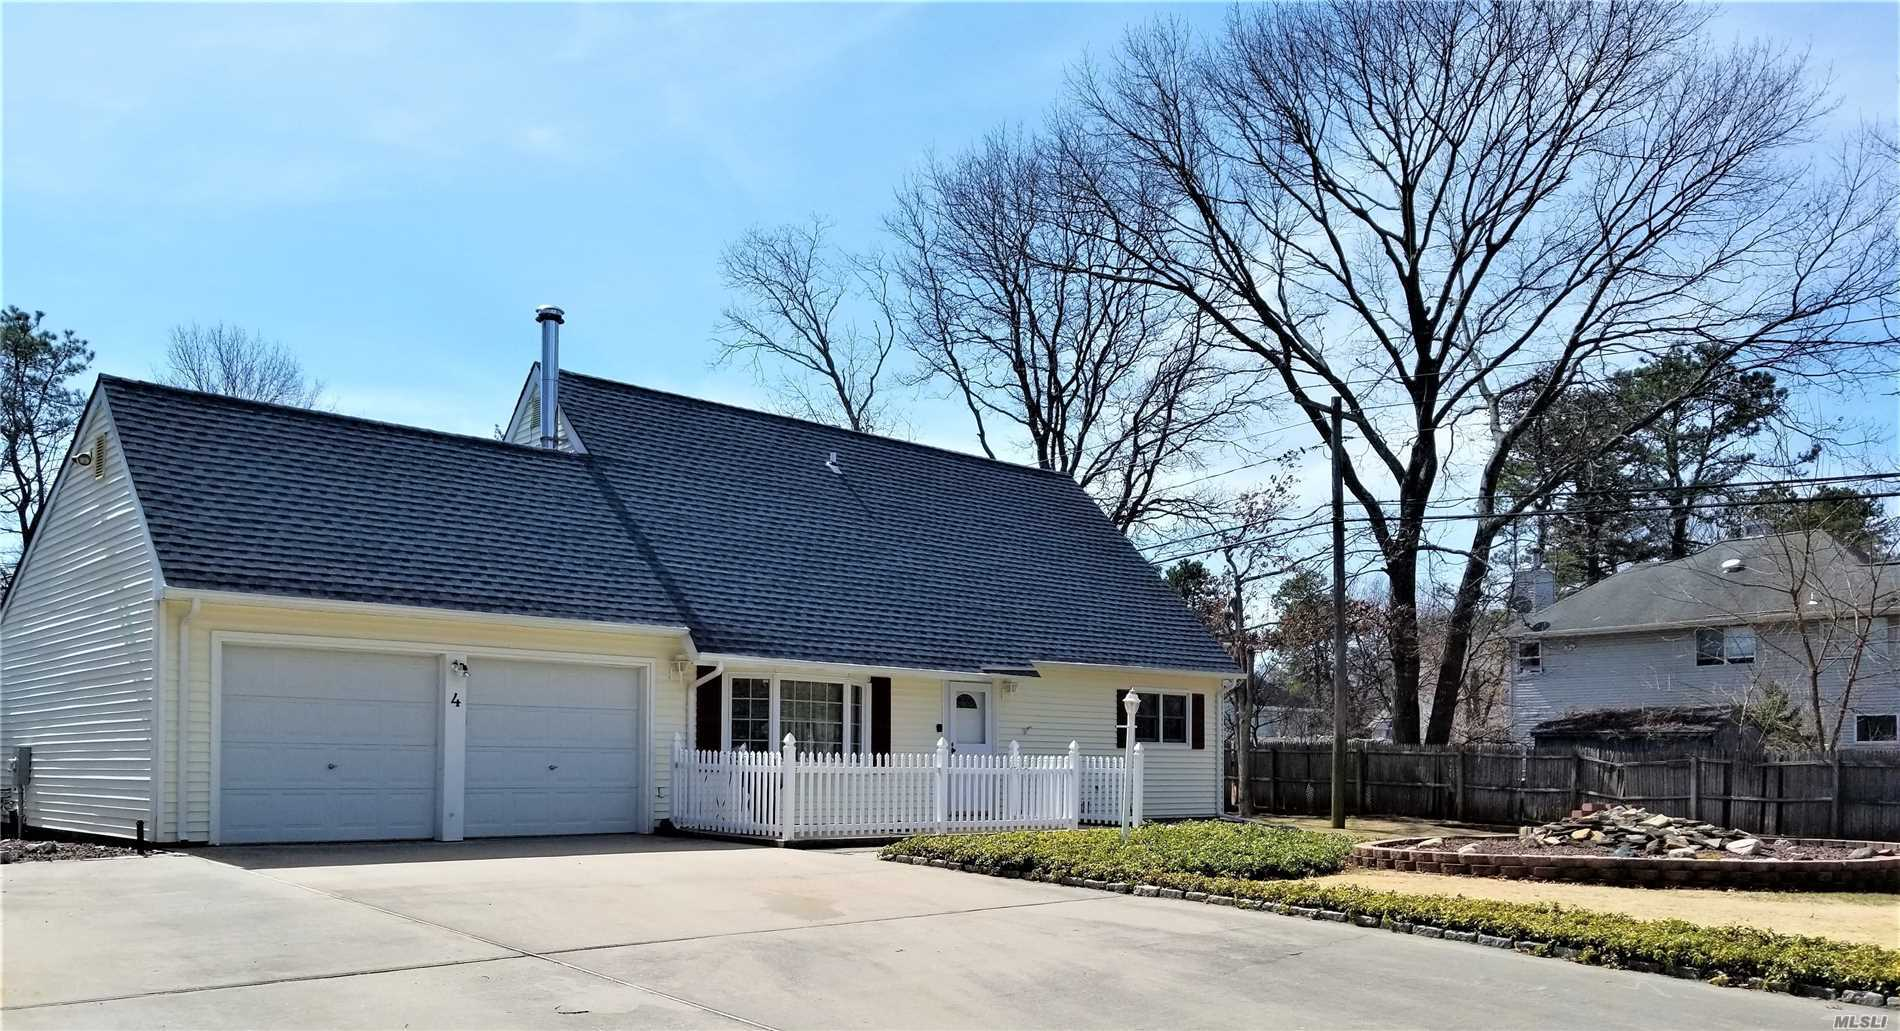 Diamond Expanded Contemporary Cape Features 4 BR's, 2 Baths, Vaulted Ceilings, 2 Story LR, Family Room with Cathedral Ceilings, Hi-Hats, CAC, Updated Eat-In-Kitchen, Laminate Flooring, Attic Fan, Large Walk-in Closets, Loft Overlooking LR, Vinyl Siding, New Roof, IGS, Semi-In-Ground 15'x30' Pool W/New Filter, Fully Fenced Professionally Landscaped Backyard With 2 Detached Decks With Canopies. 9 Car Driveway, Oversized 2 Car Garage,